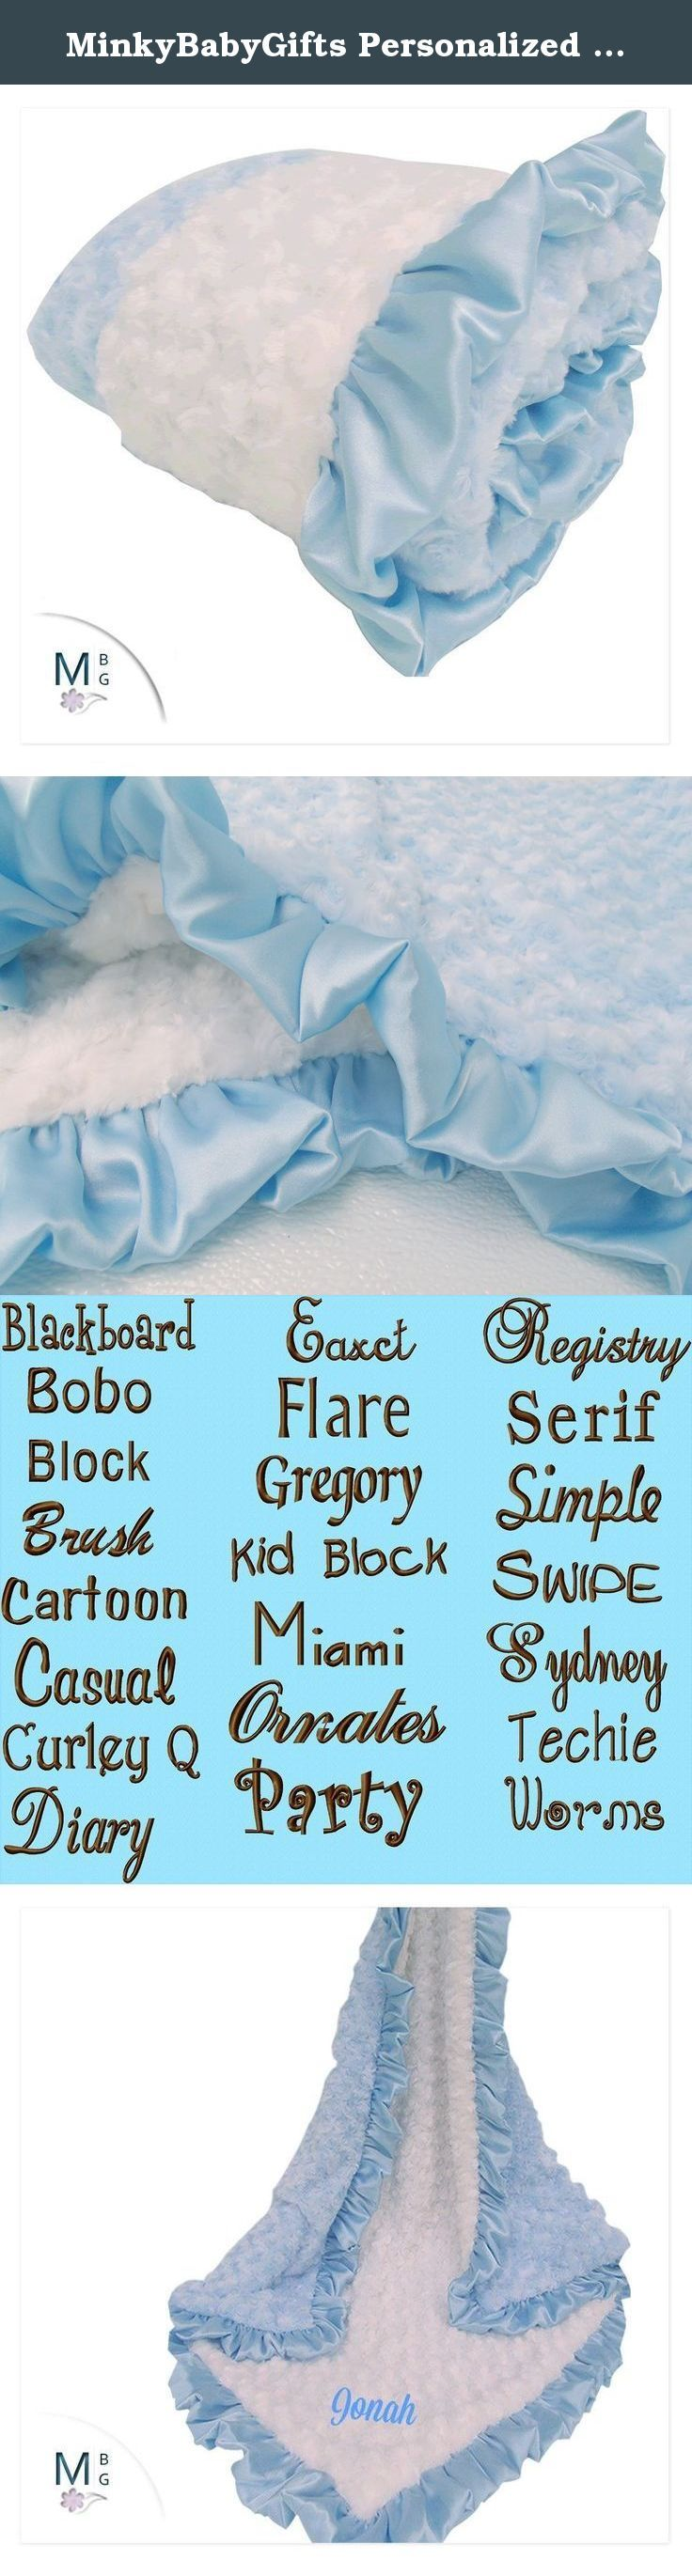 MinkyBabyGifts Personalized Blue and Ivory Minky Baby Blanket. Minky baby blanket in soft baby blue rosebud swirl with ivory rosebud swirl minky, and a blue satin ruffle. A sweet traditional blanket, make it more special by adding a name. Minky is the softest and most durable fabric around, many of our customers have contacted us years after the initial purchase to tell us how well their blanket has held up. Personalization is available, please select size and embroidery options from the...